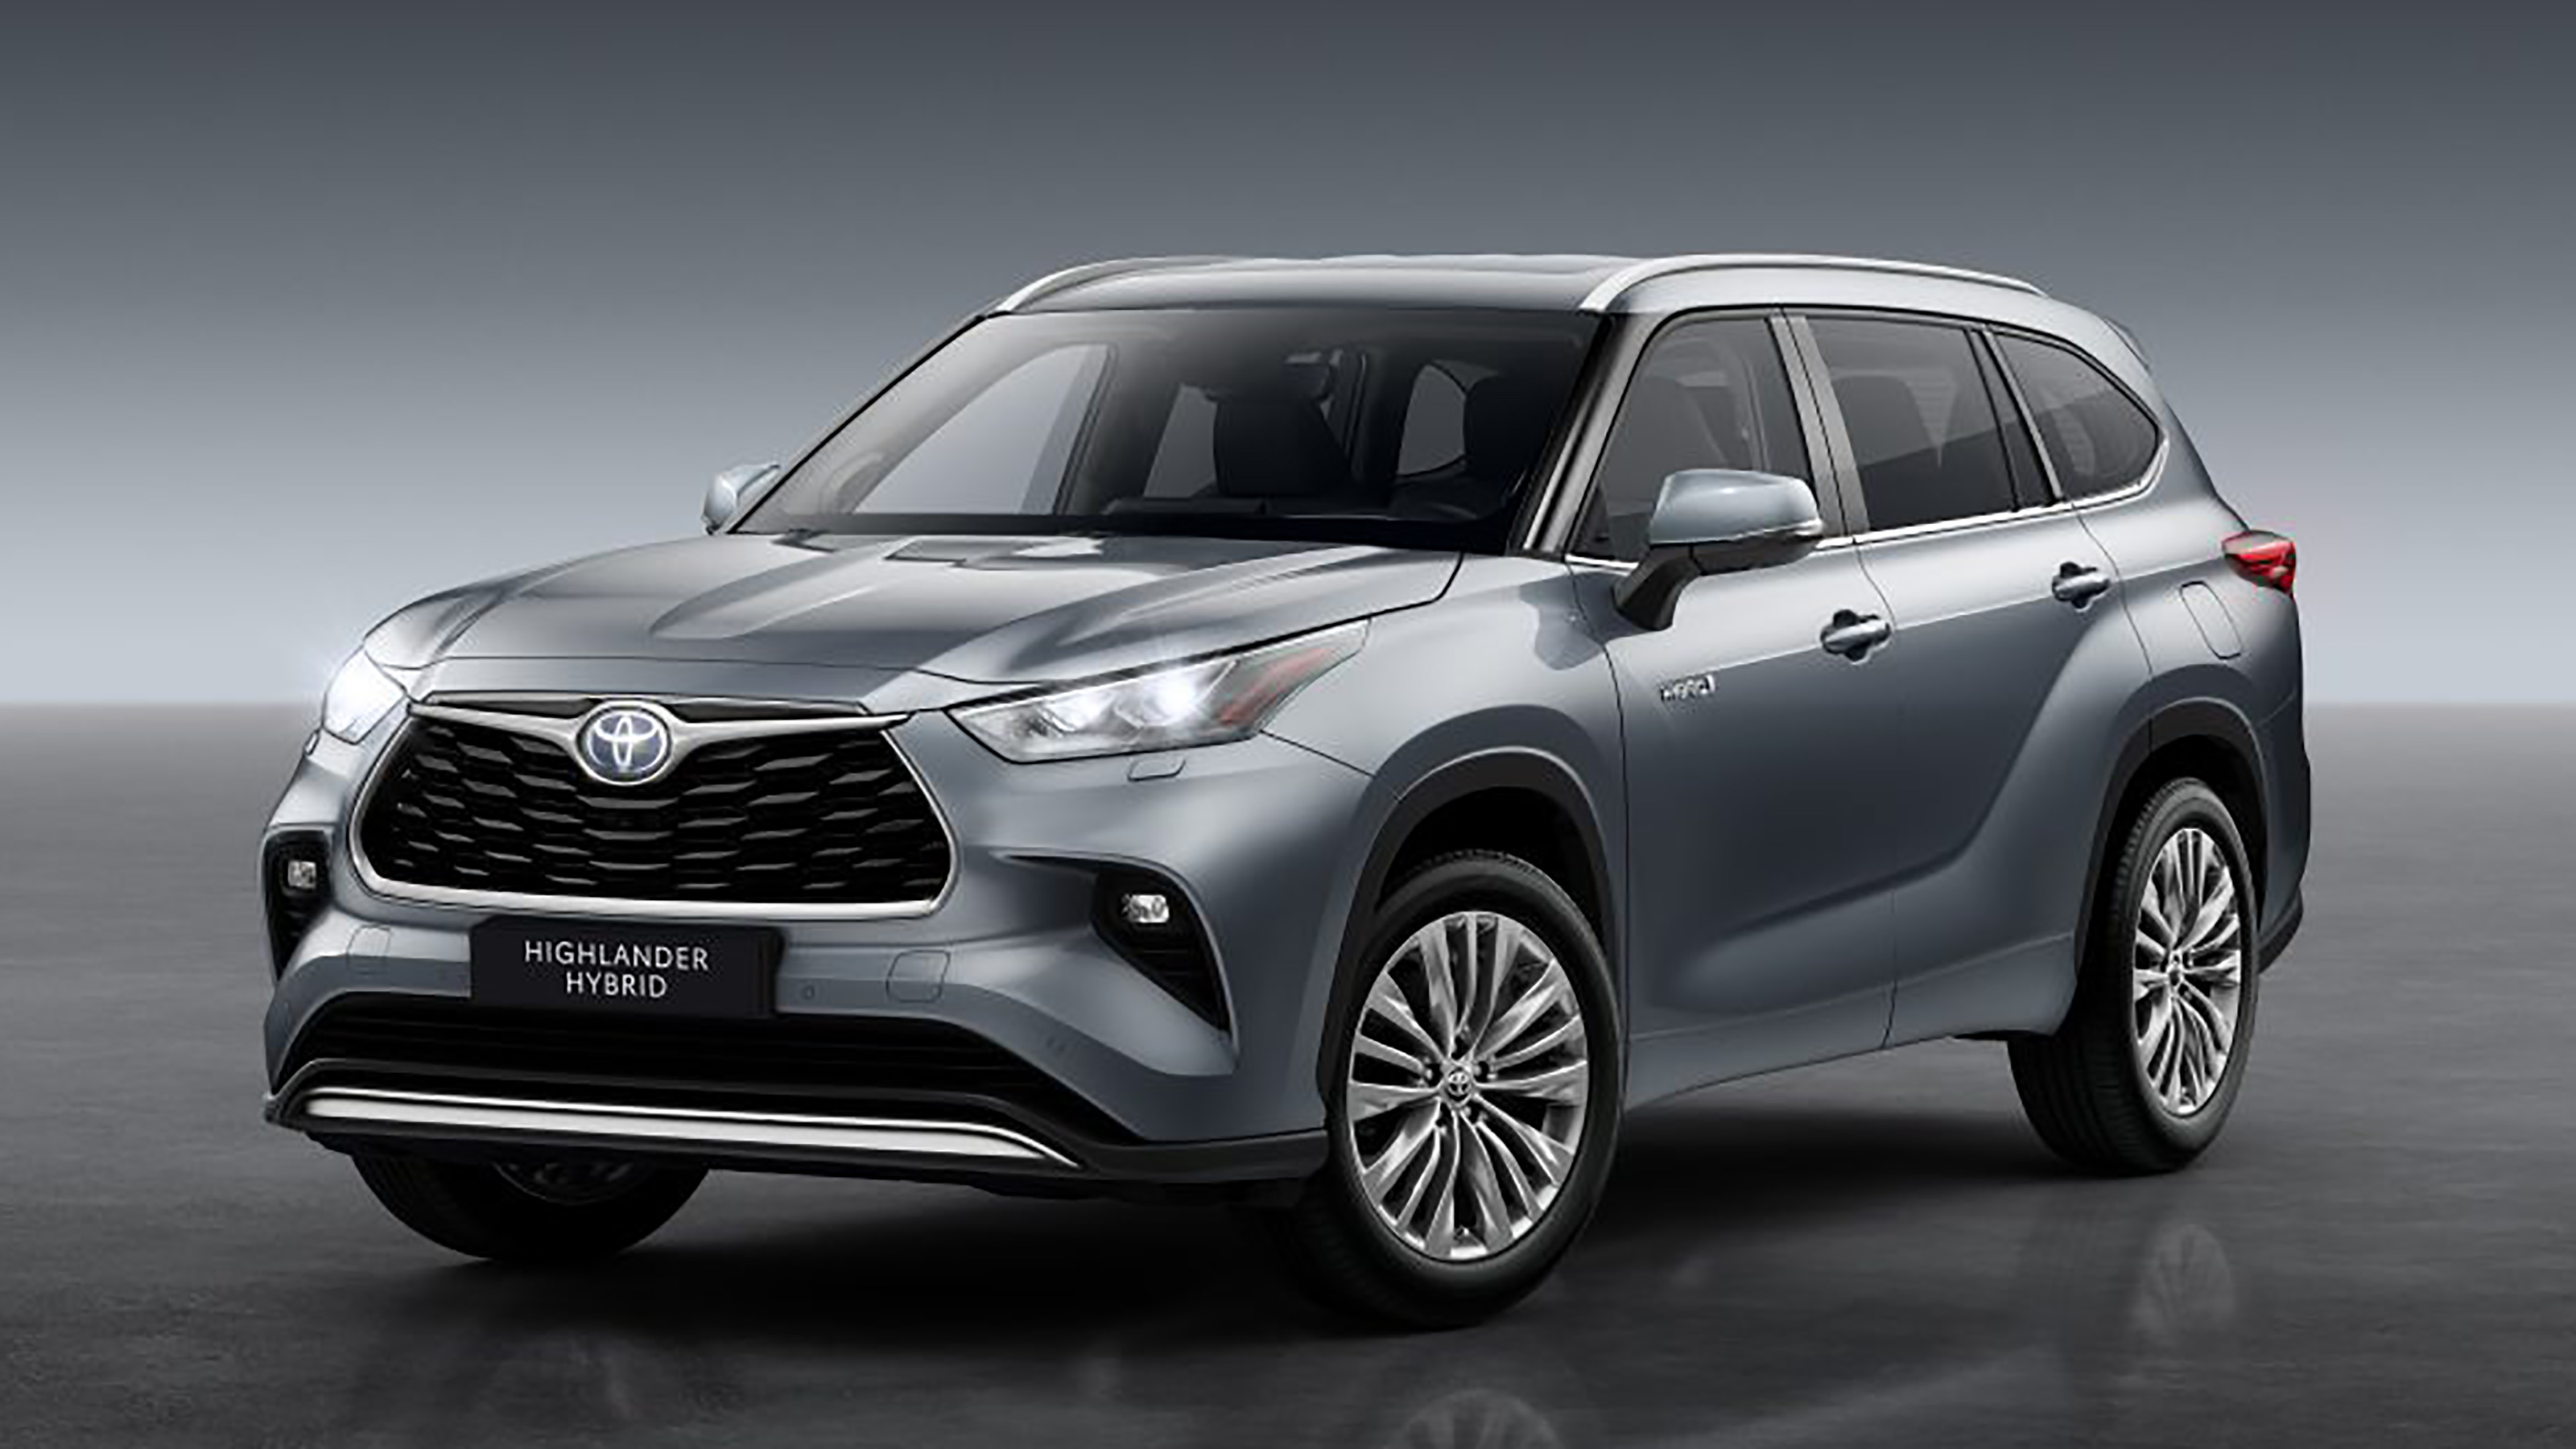 New Seven Seat Toyota Highlander Suv Set For 2021 Launch Auto Express